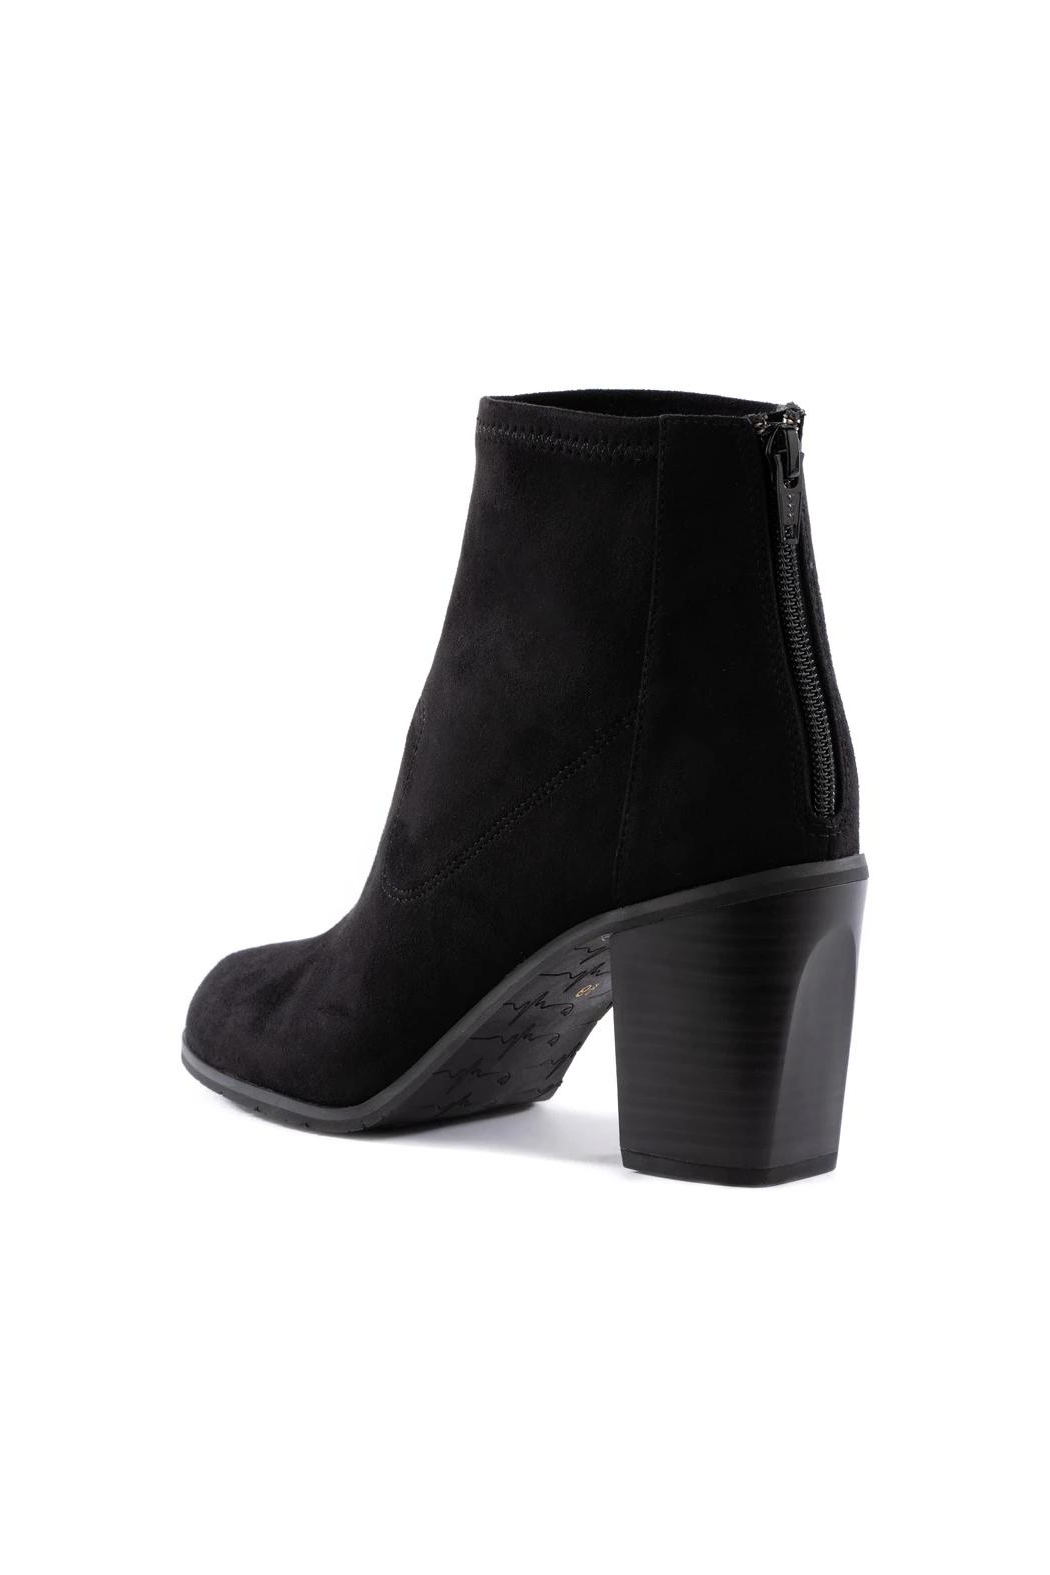 BC Footwear Ringmaster Bootie - Side Cropped Image